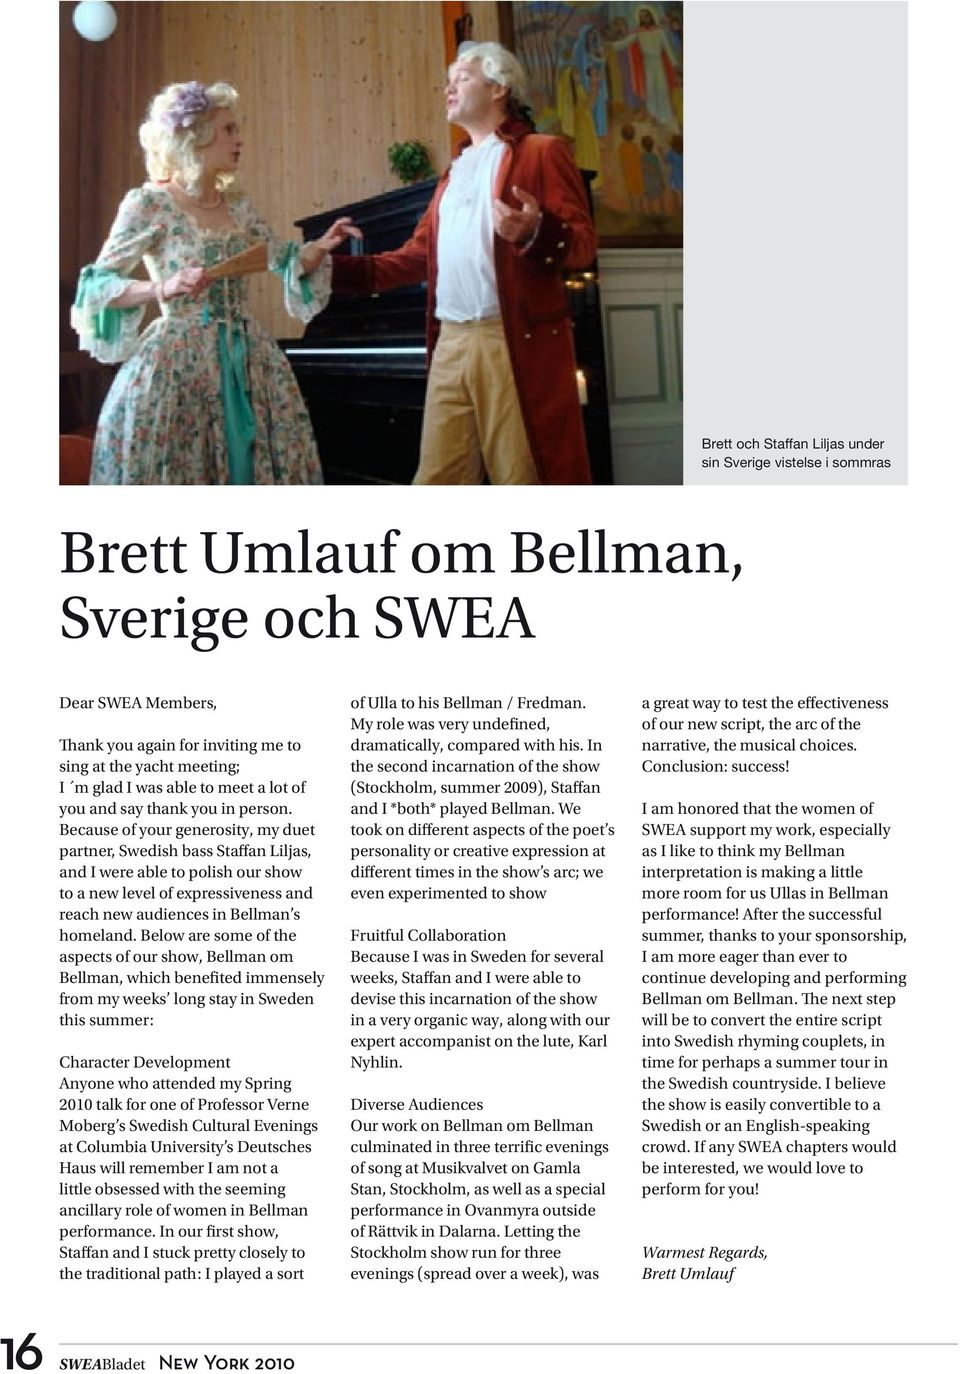 Because of your generosity, my duet partner, Swedish bass Staffan Liljas, and I were able to polish our show to a new level of expressiveness and reach new audiences in Bellman s homeland.